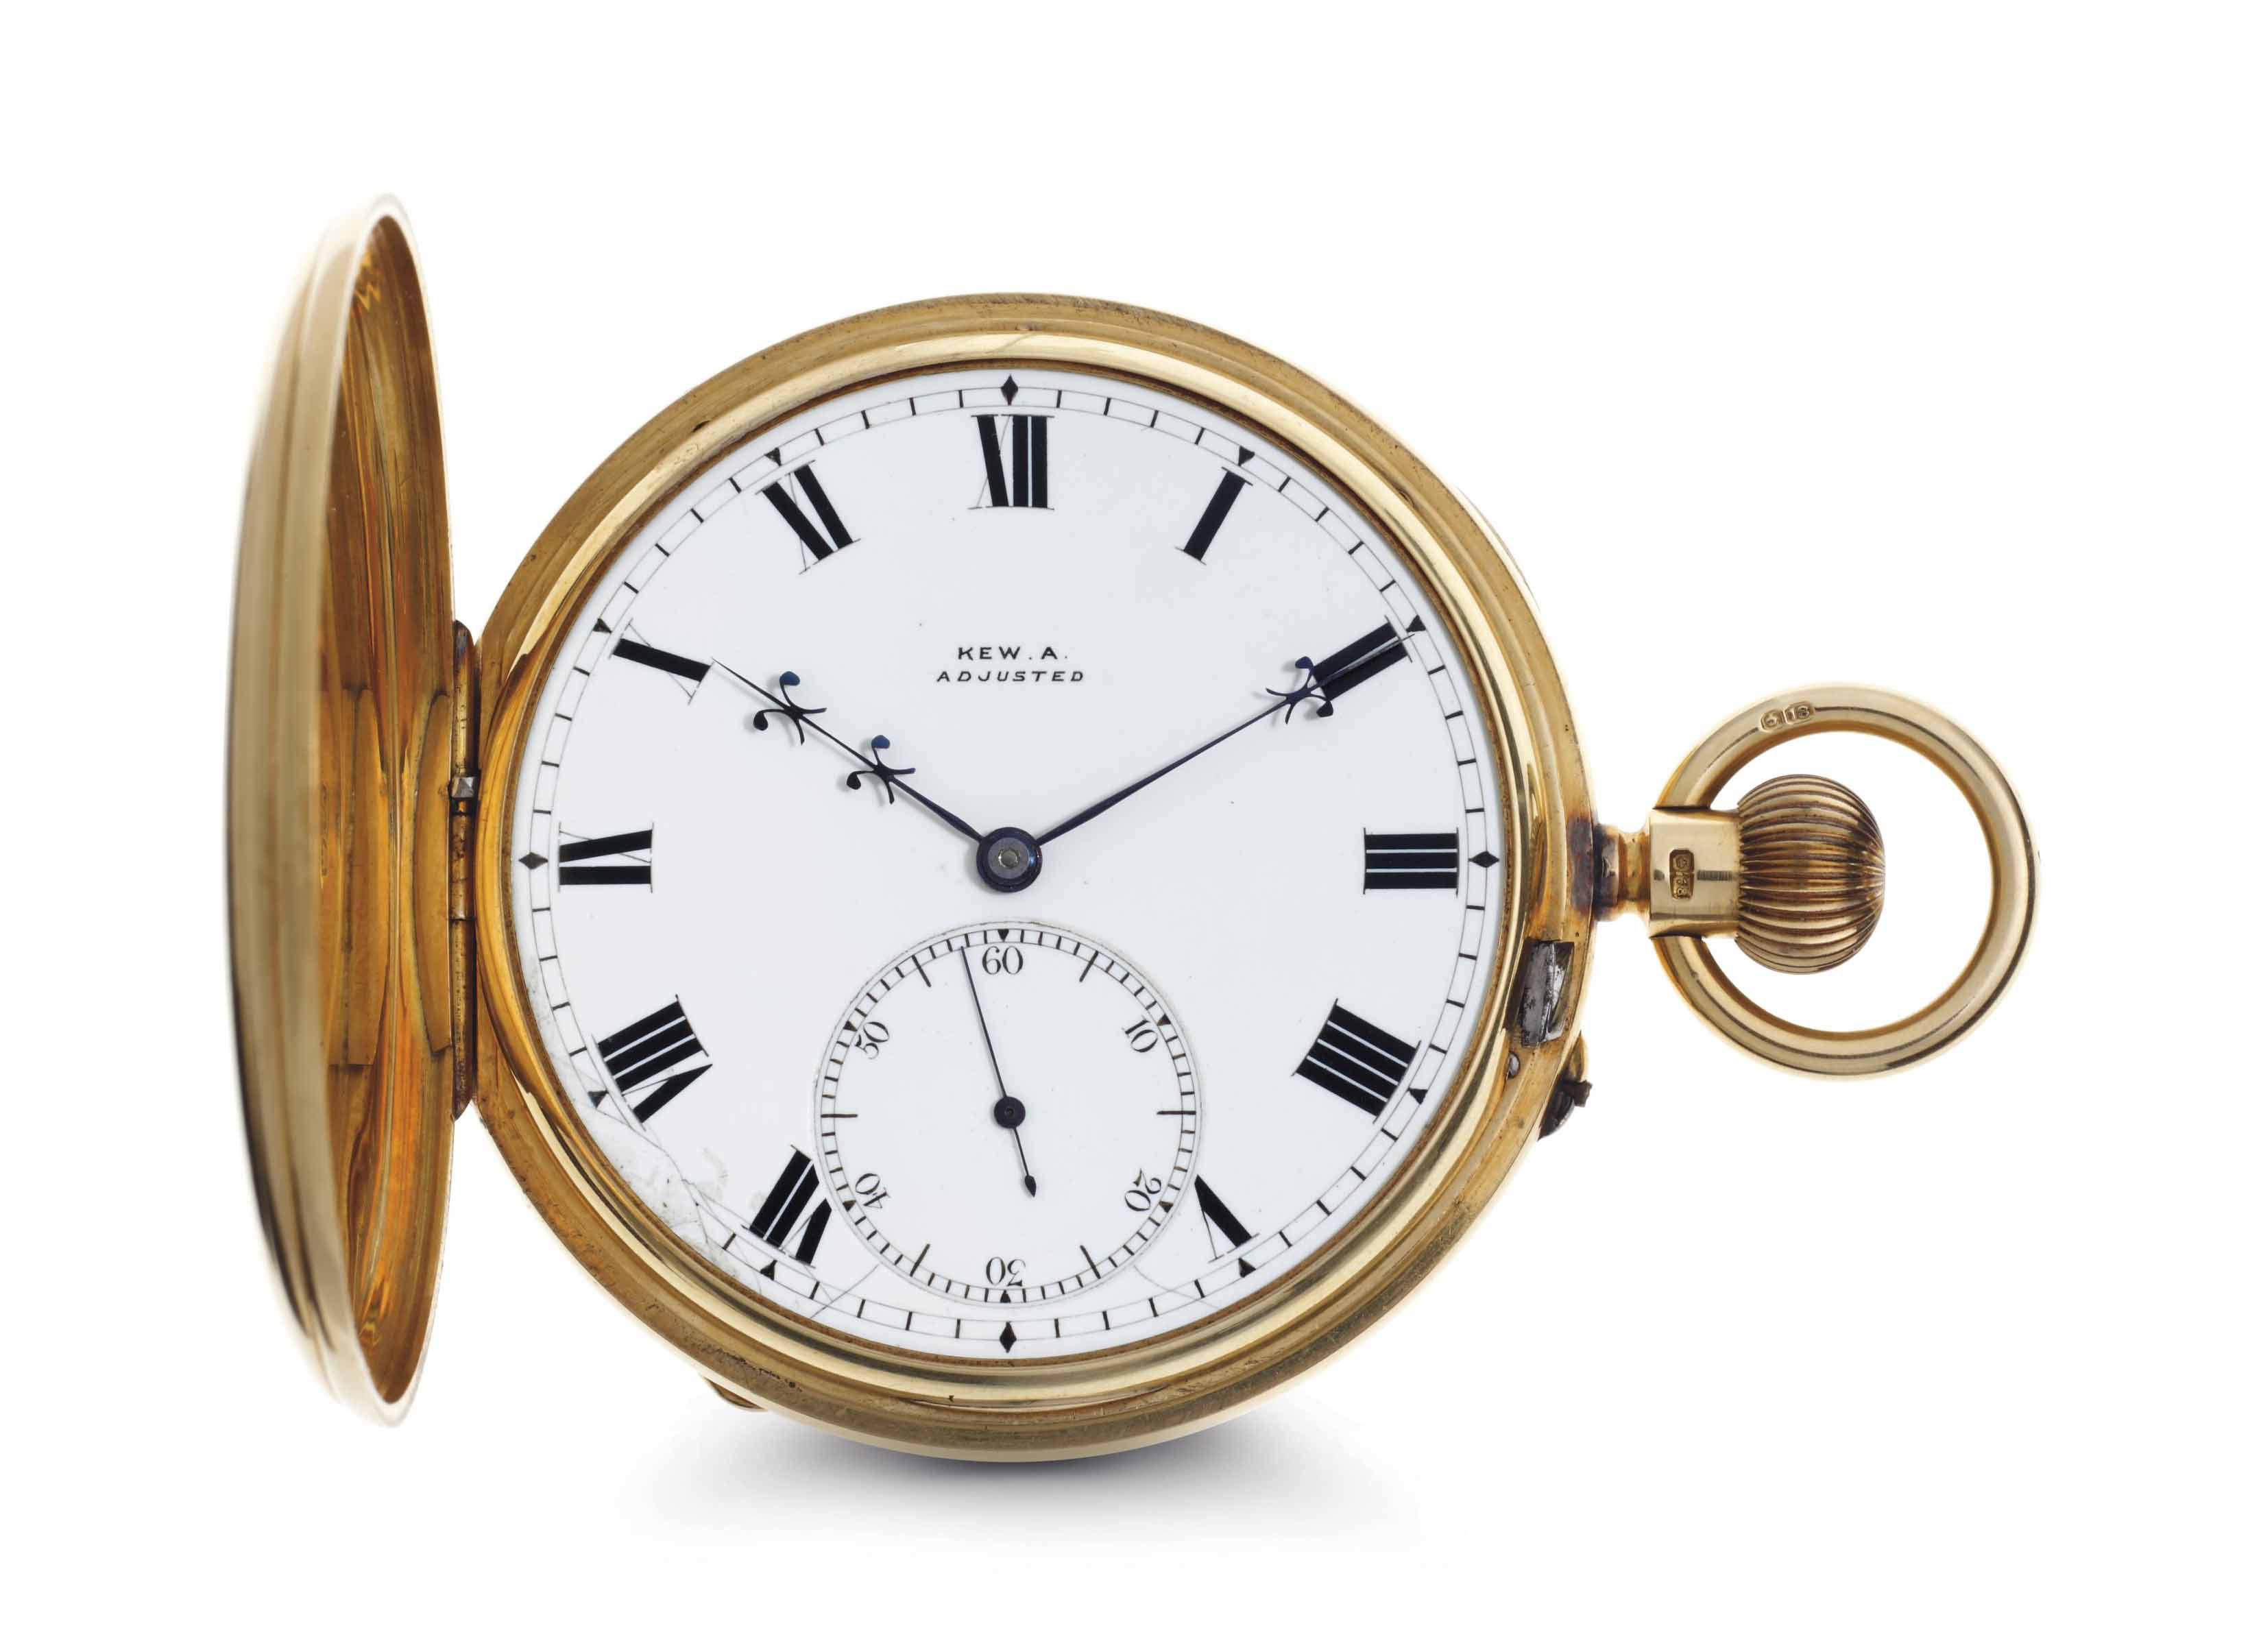 Thomas Russell & Son. A Rare 18 Gold Half-Hunter Case Karrusel Keyless Lever Pocket Watch